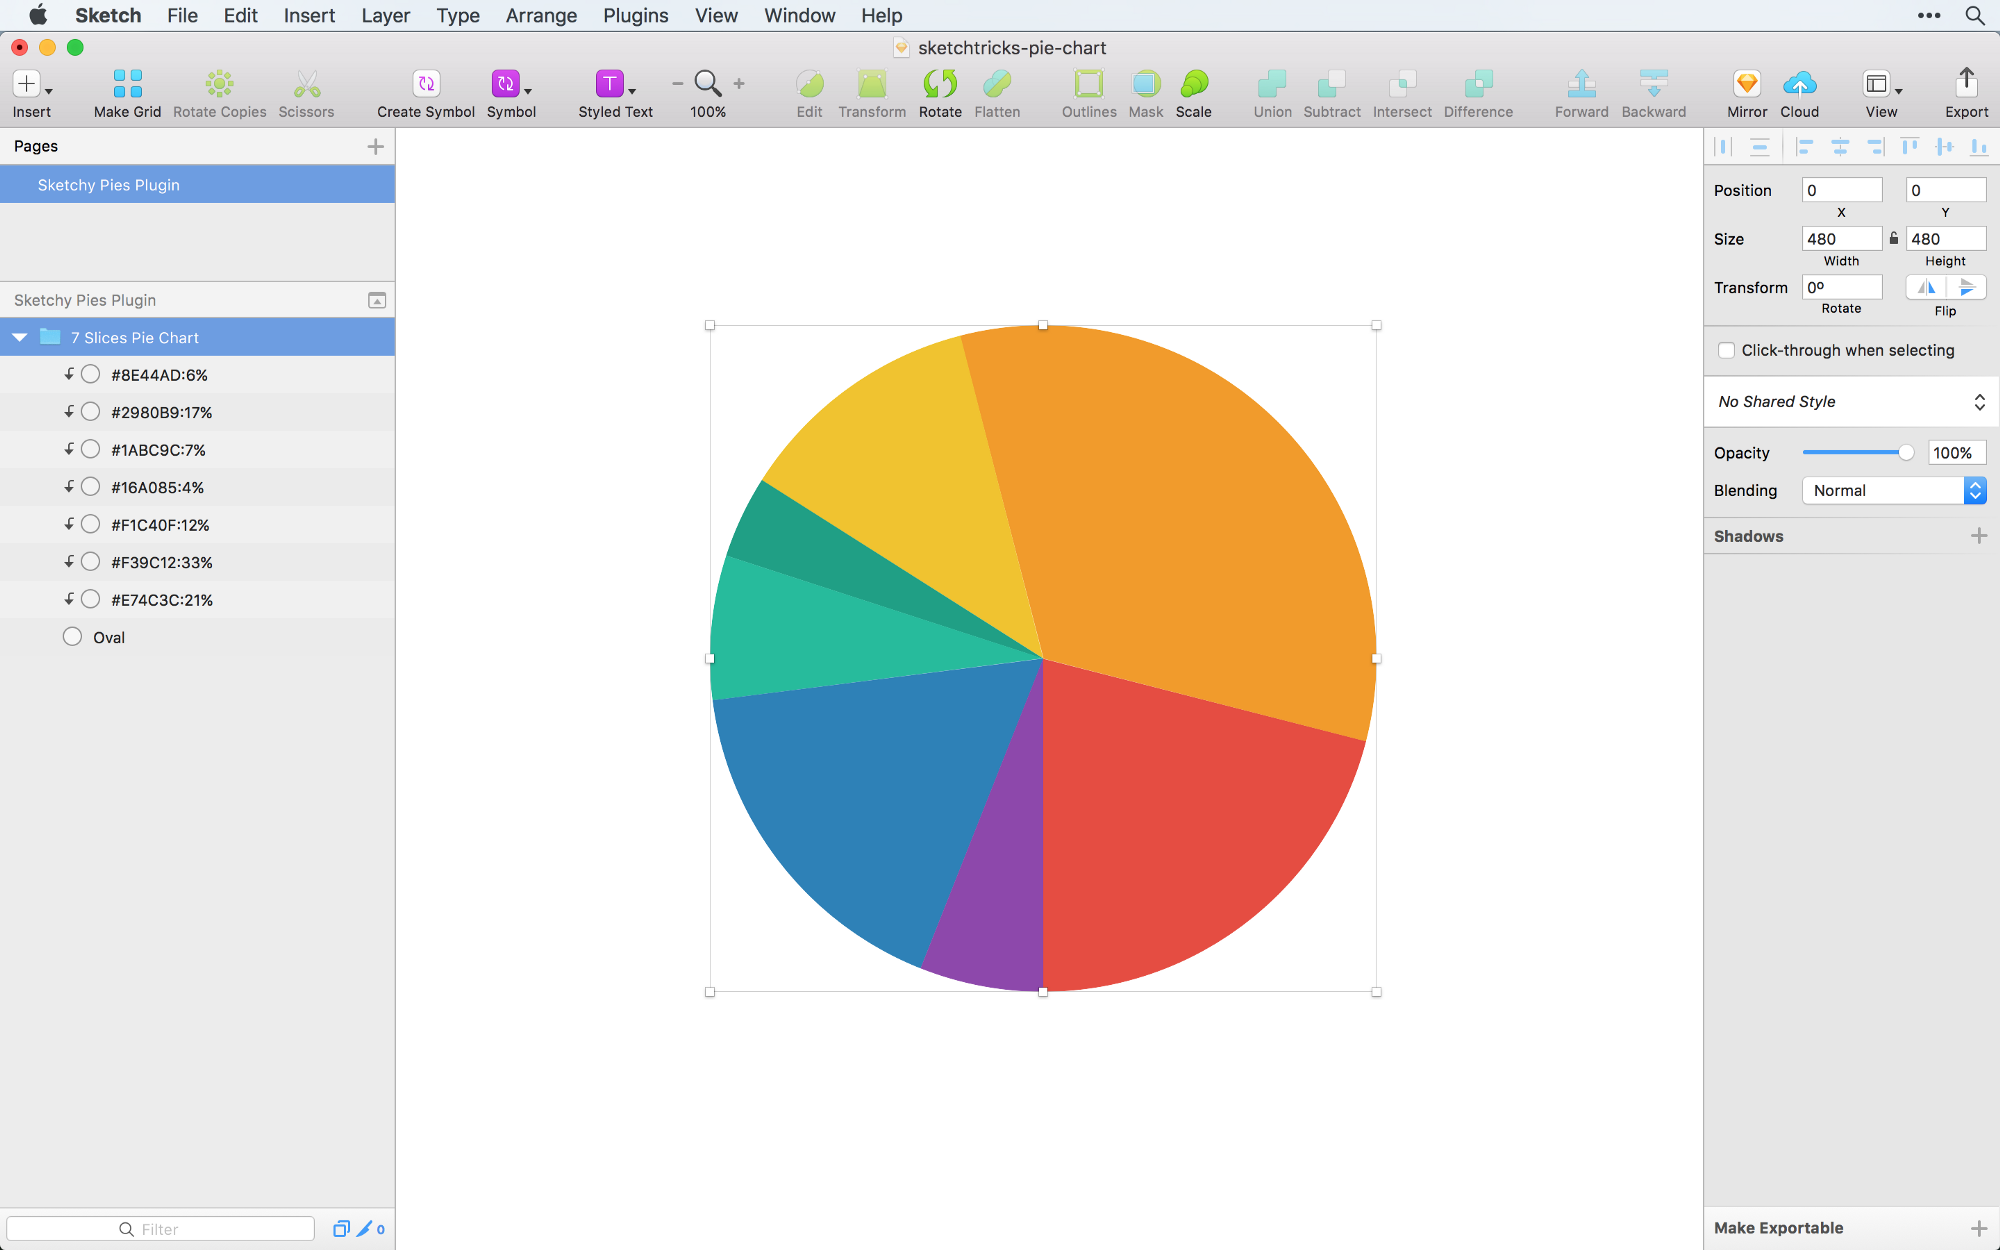 How to draw a pie graph erd connectors creating a pie chart in sketch the right way sketch tricks medium 1w rc3xn88s4e2icp7brf5w ccuart Image collections